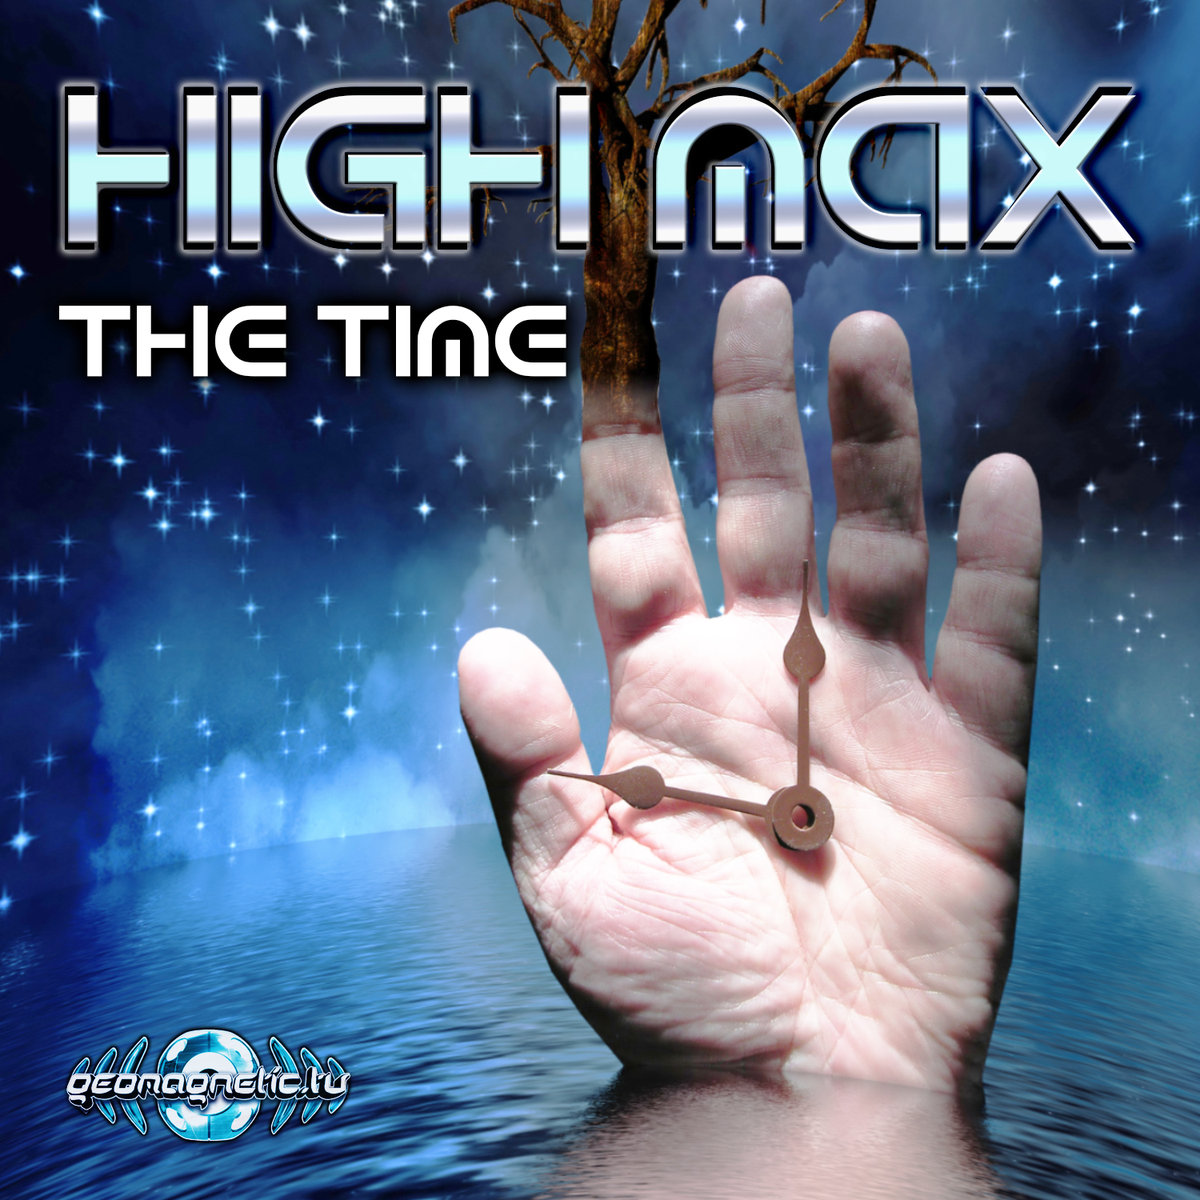 High Max - Temple of Silence @ 'The Time' album (electronic, high max)